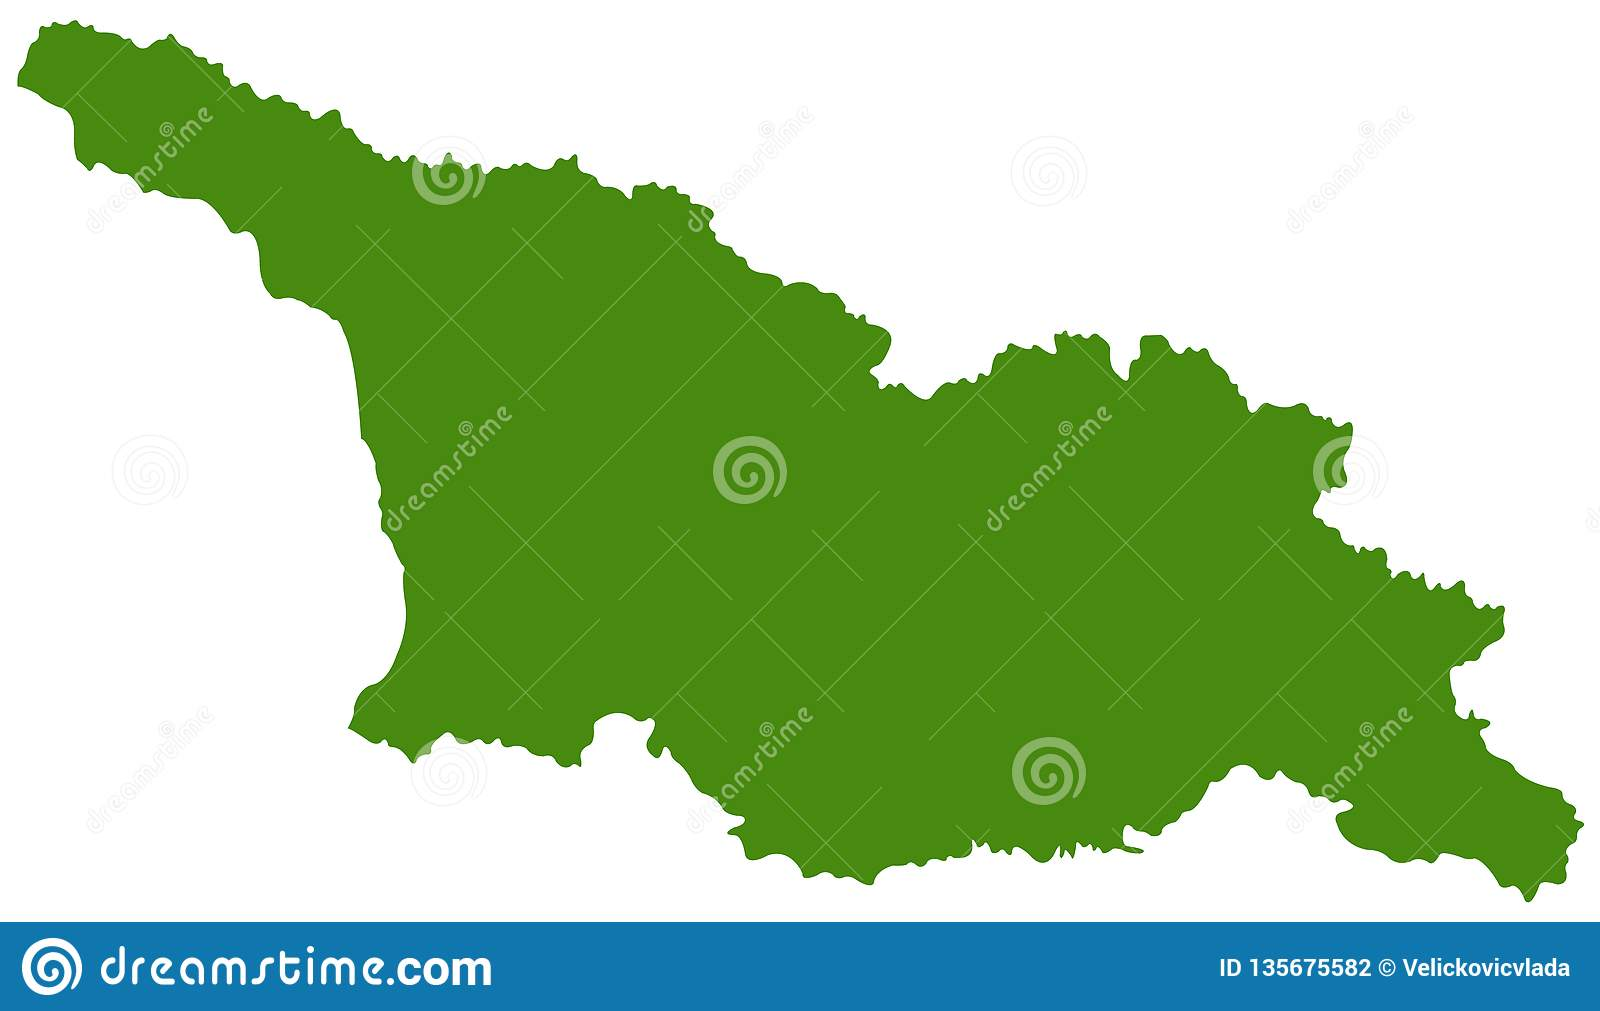 Where Is The Country Of Georgia Located On A Map.Georgia Country Map Is A Country In The Caucasus Region Of Eurasia